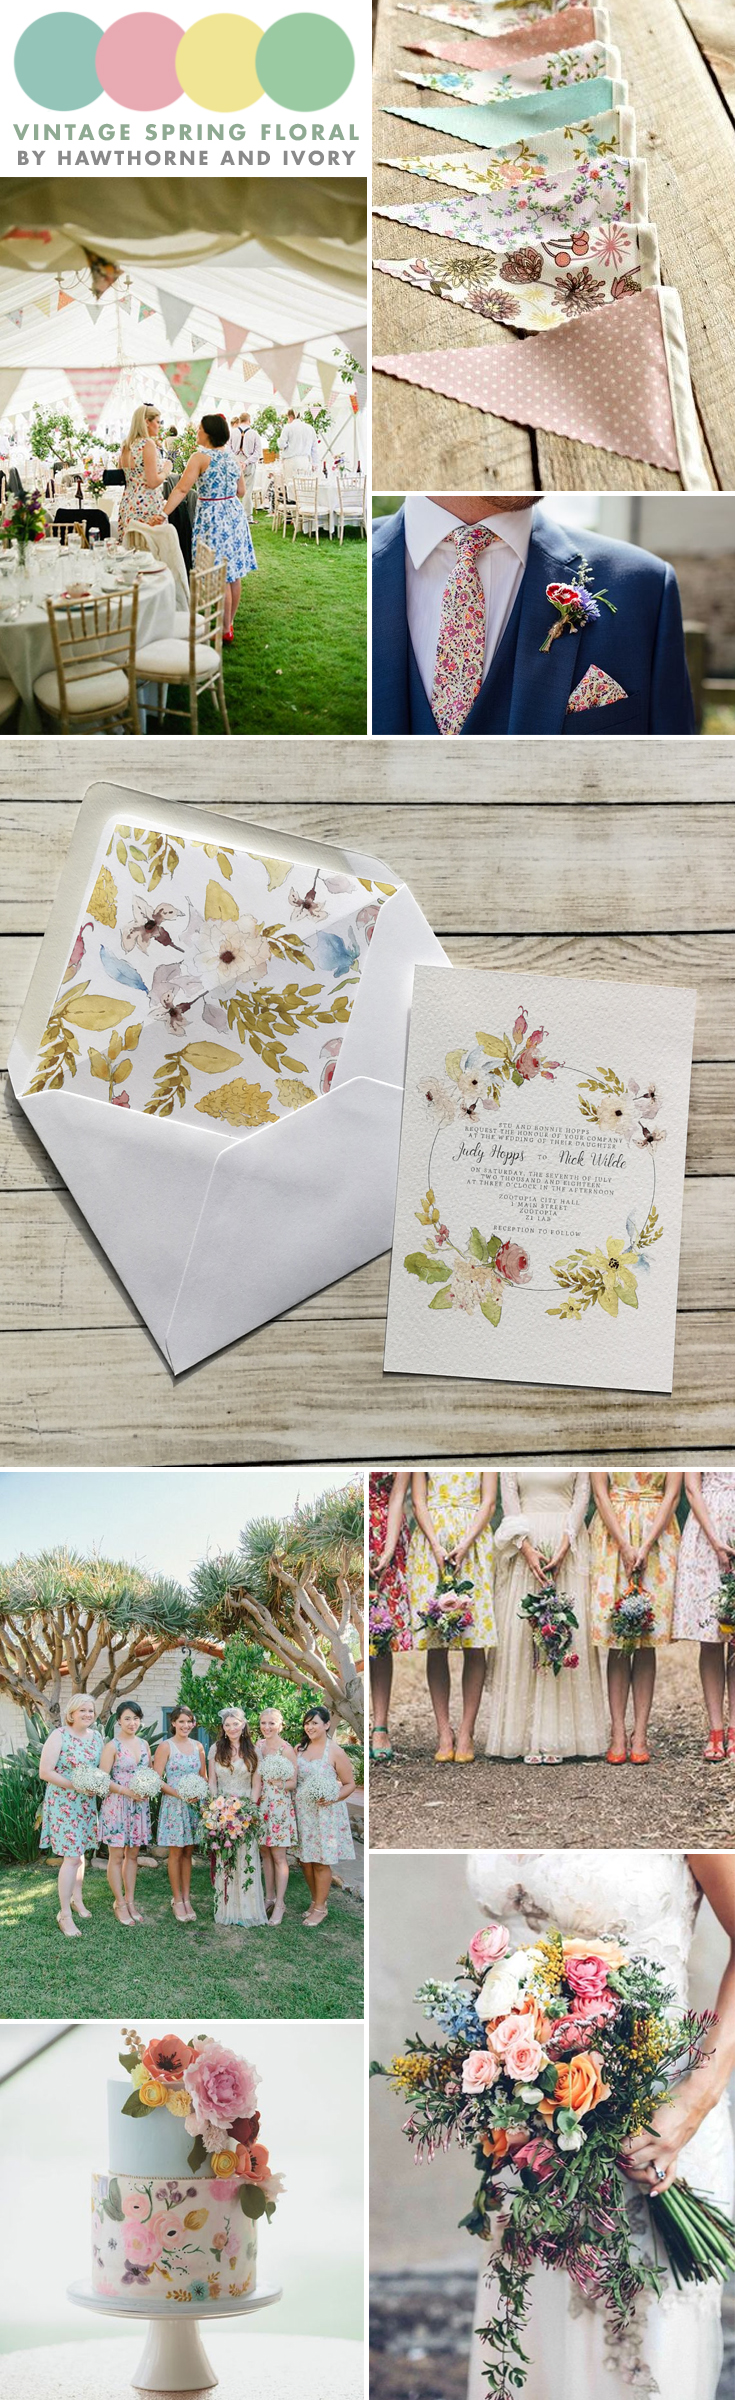 spring floral vintage shabby chic wedding moodboard hawthorne and ivory